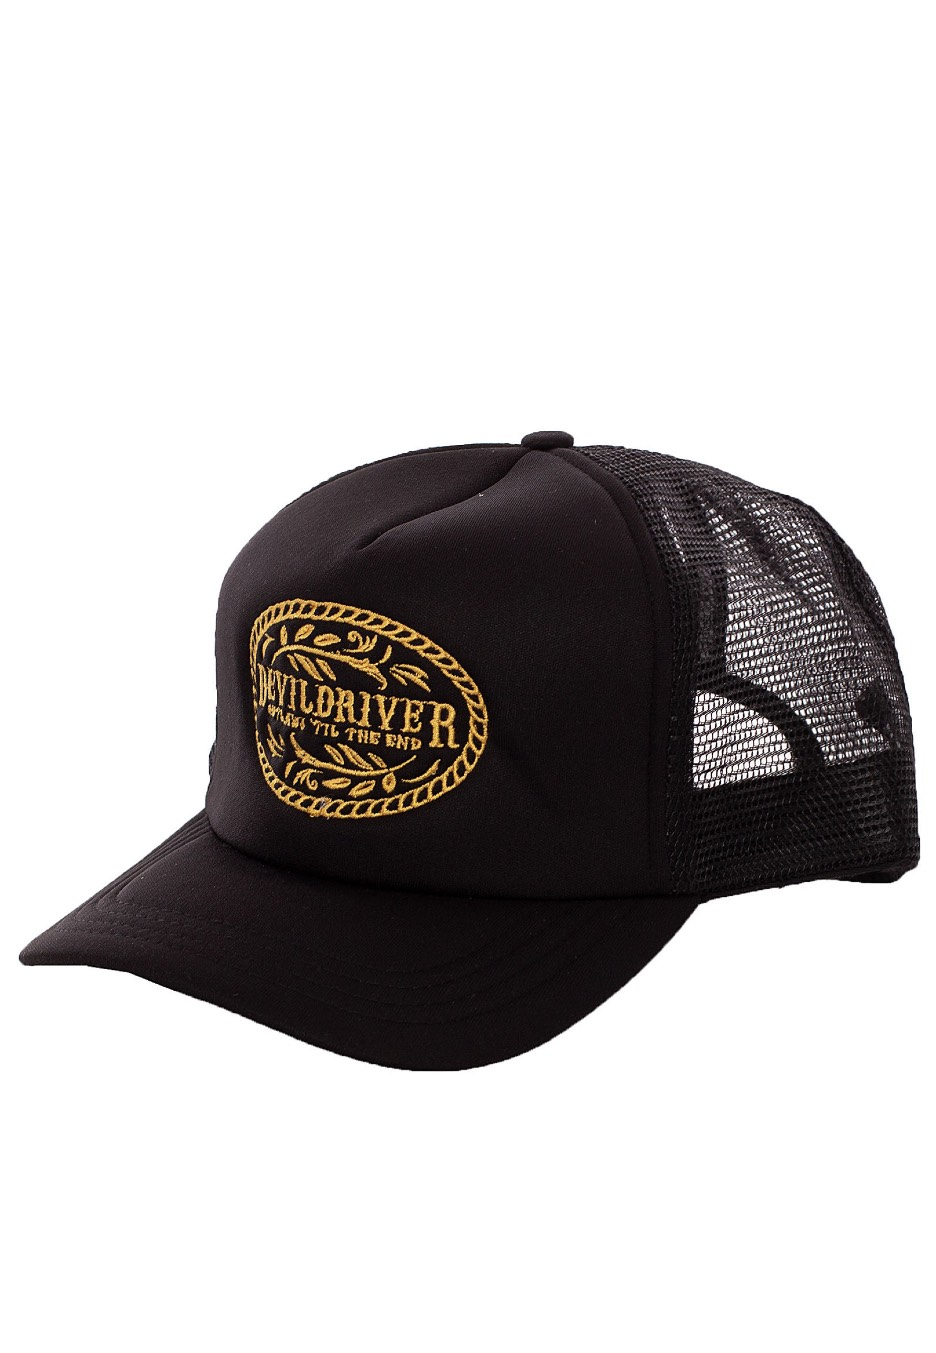 DevilDriver - Western Trucker - Cap - Official Metal Merchandise Shop -  Impericon.com UK 4de867f3046